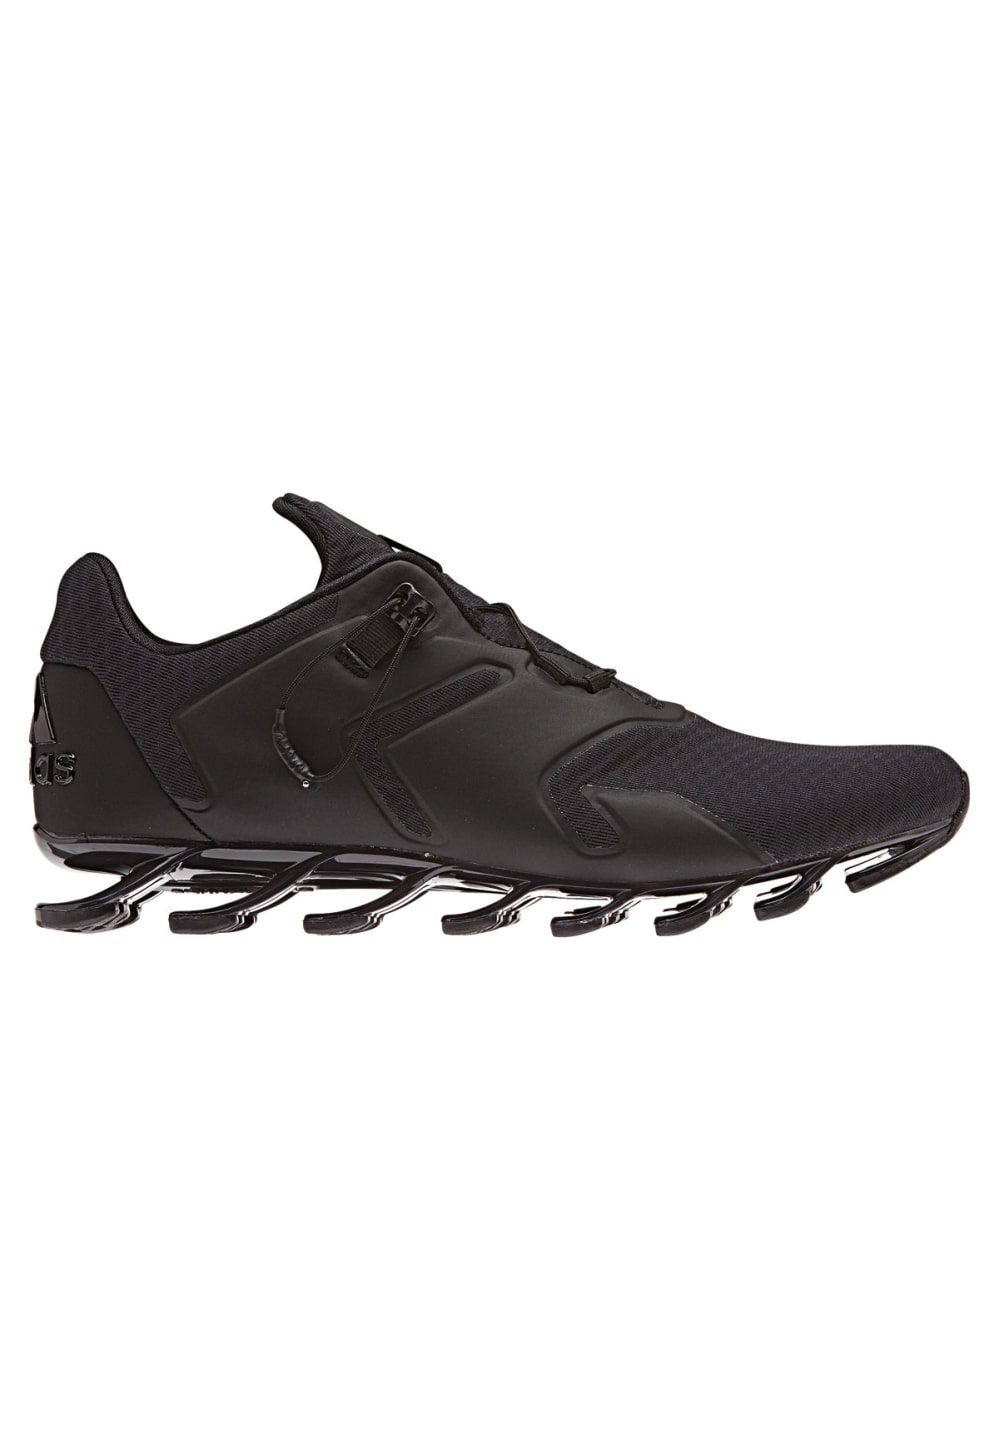 new product 31f4a 50824 Previous. Next. adidas. Springblade Solyce ...